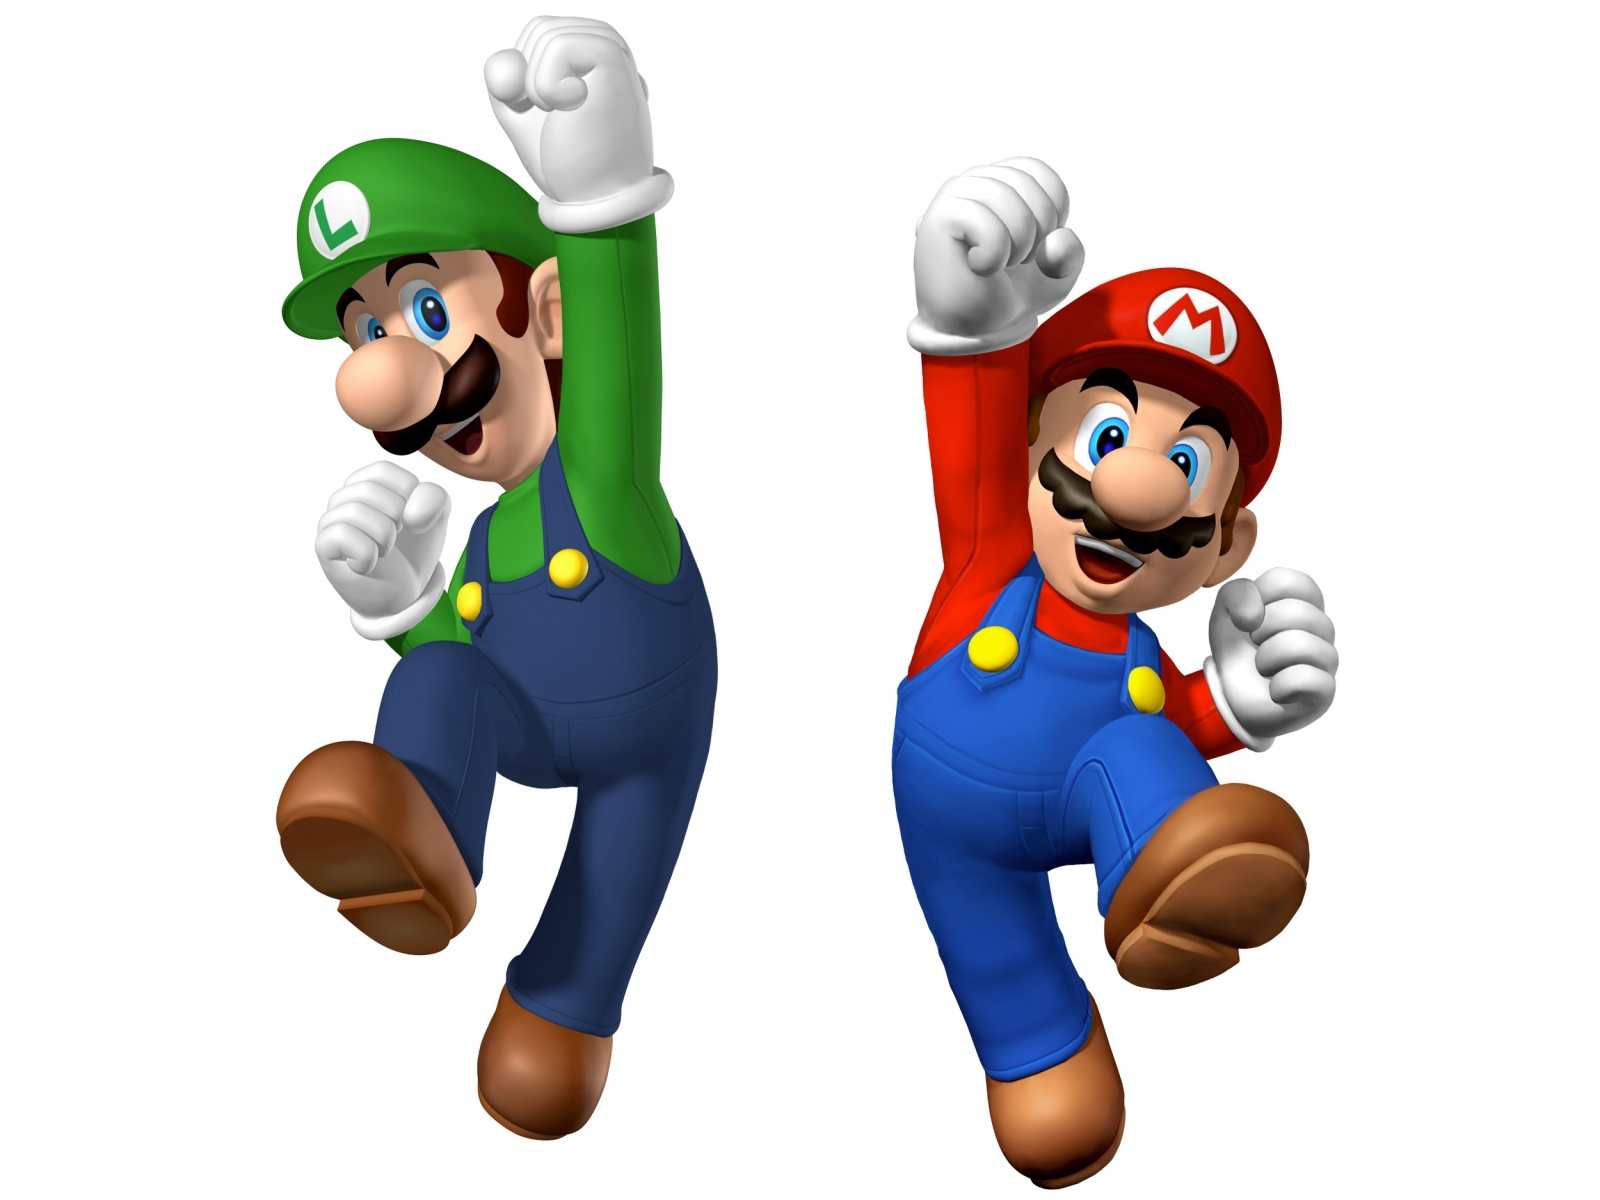 all-of-nintendos-android-and-ios-games-will-be-free-to-play-image-cultofandroidcomwp-contentuploads201511Mario_and_luigi-6-jpg